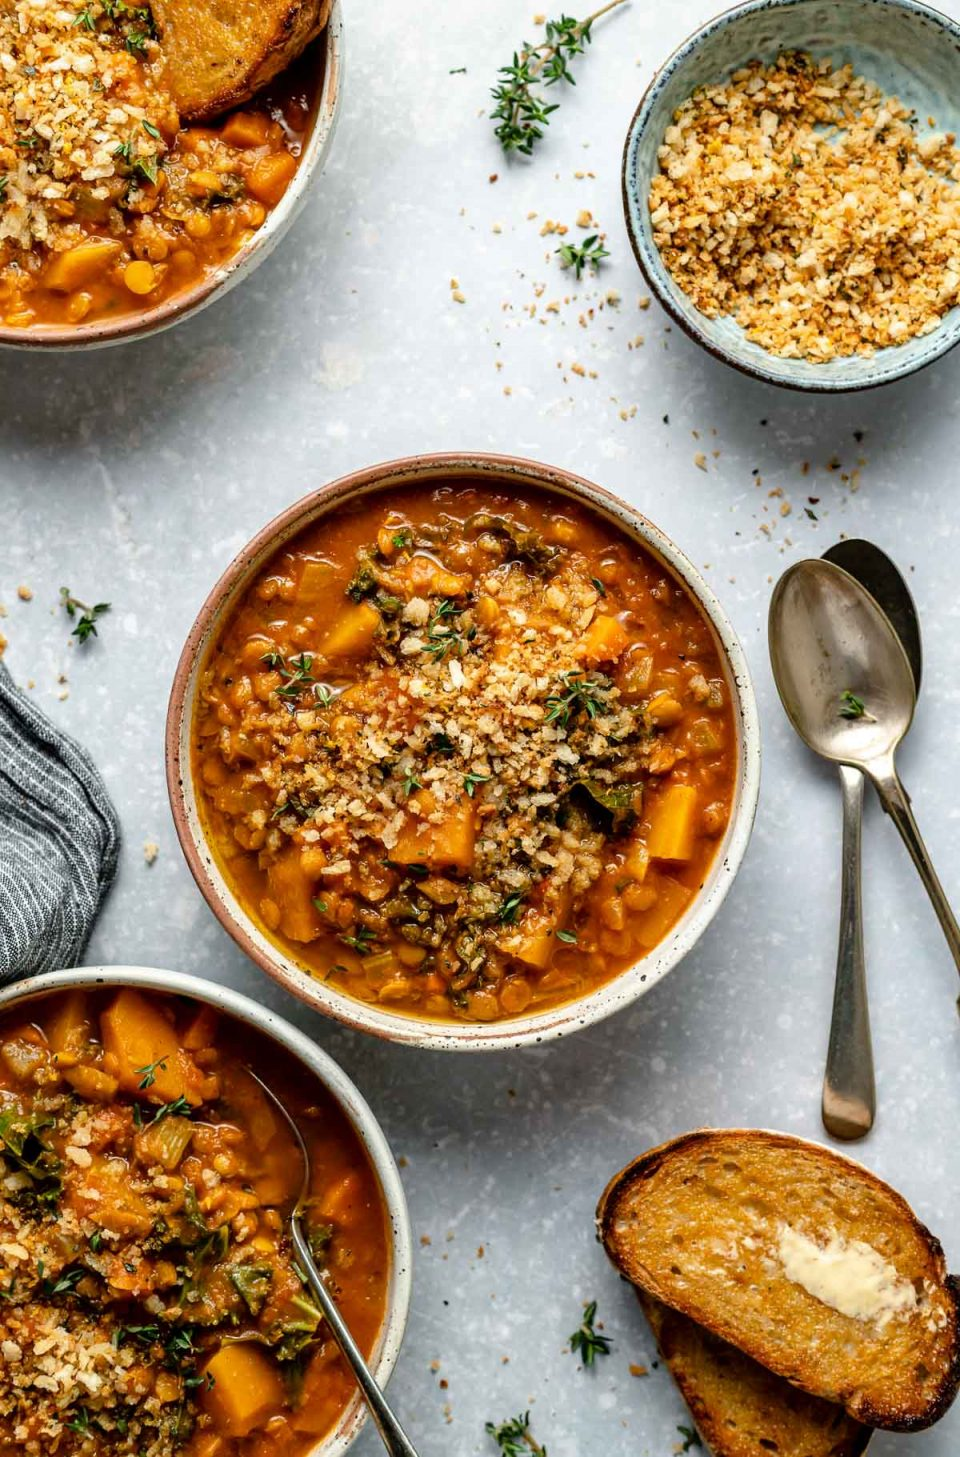 Vegan lentil soup, topped with toasted breadcrumbs, served in 3 speckled ceramic bowls. The bowls sit atop a light blue surface. The bowls are surrounded by crusty buttered bread, spoons, and a sprinkling of fresh herbs & breadcrumbs.